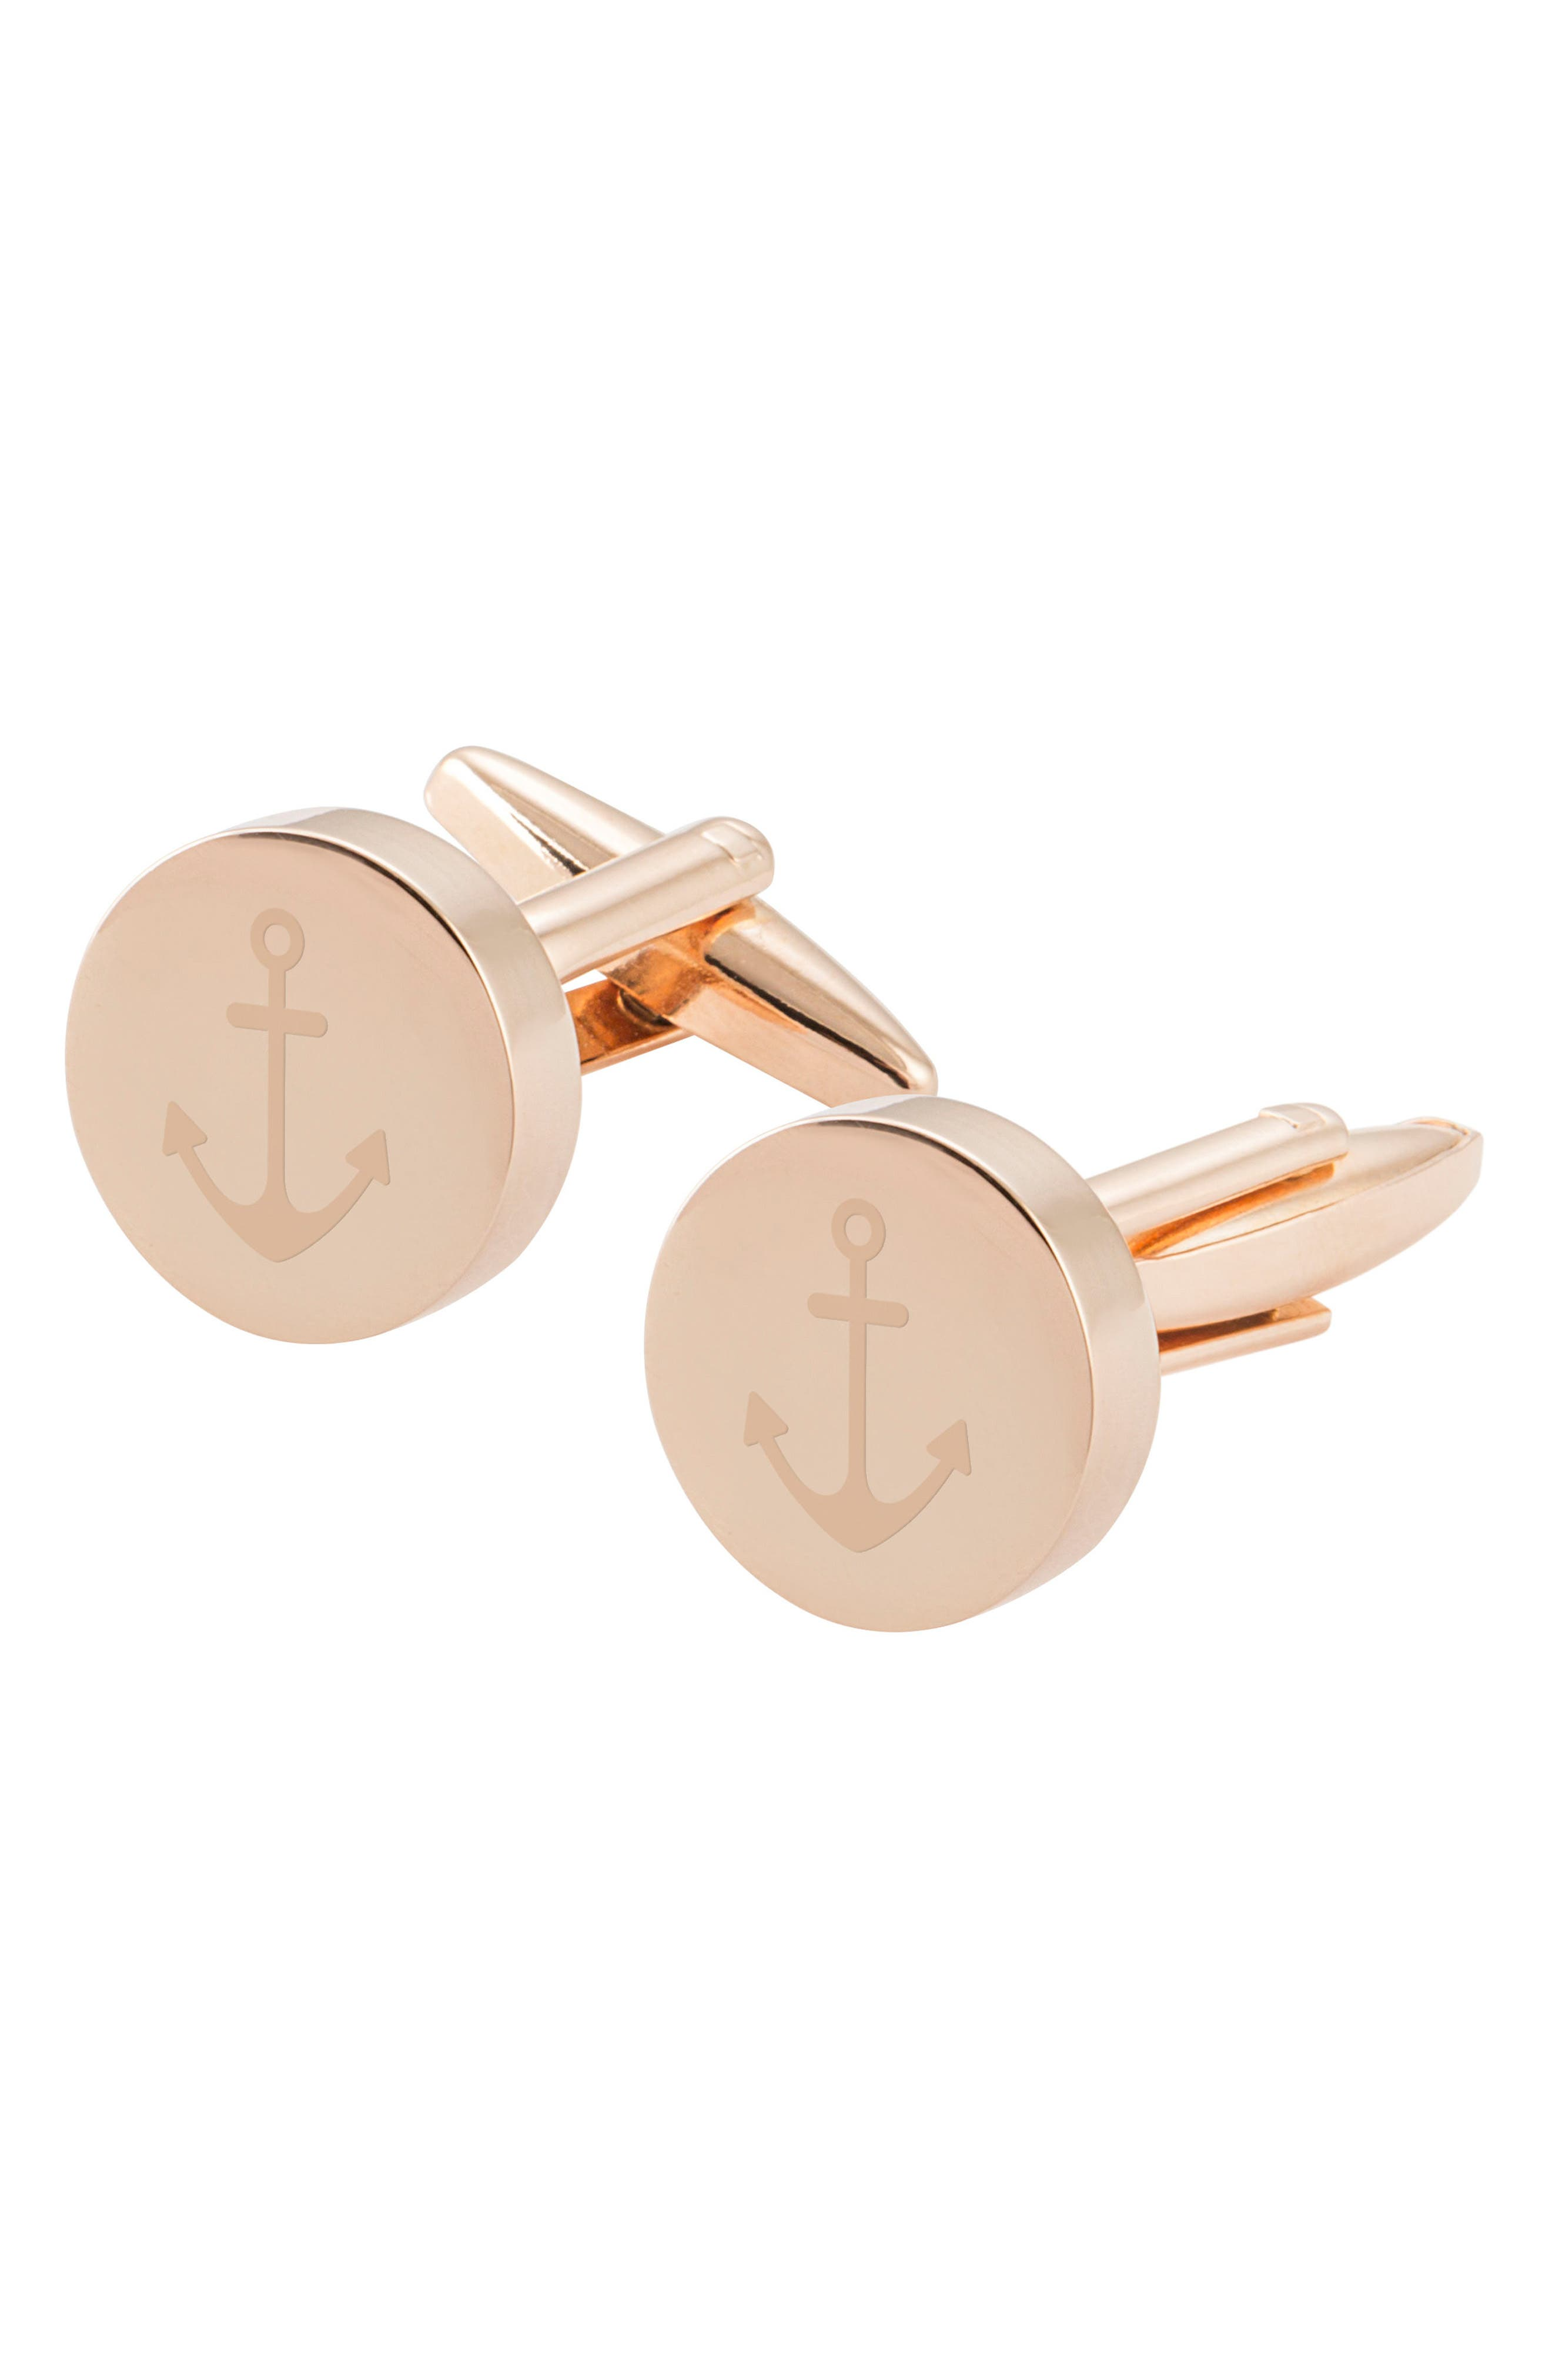 Anchor Cuff Links,                         Main,                         color, Rose Gold